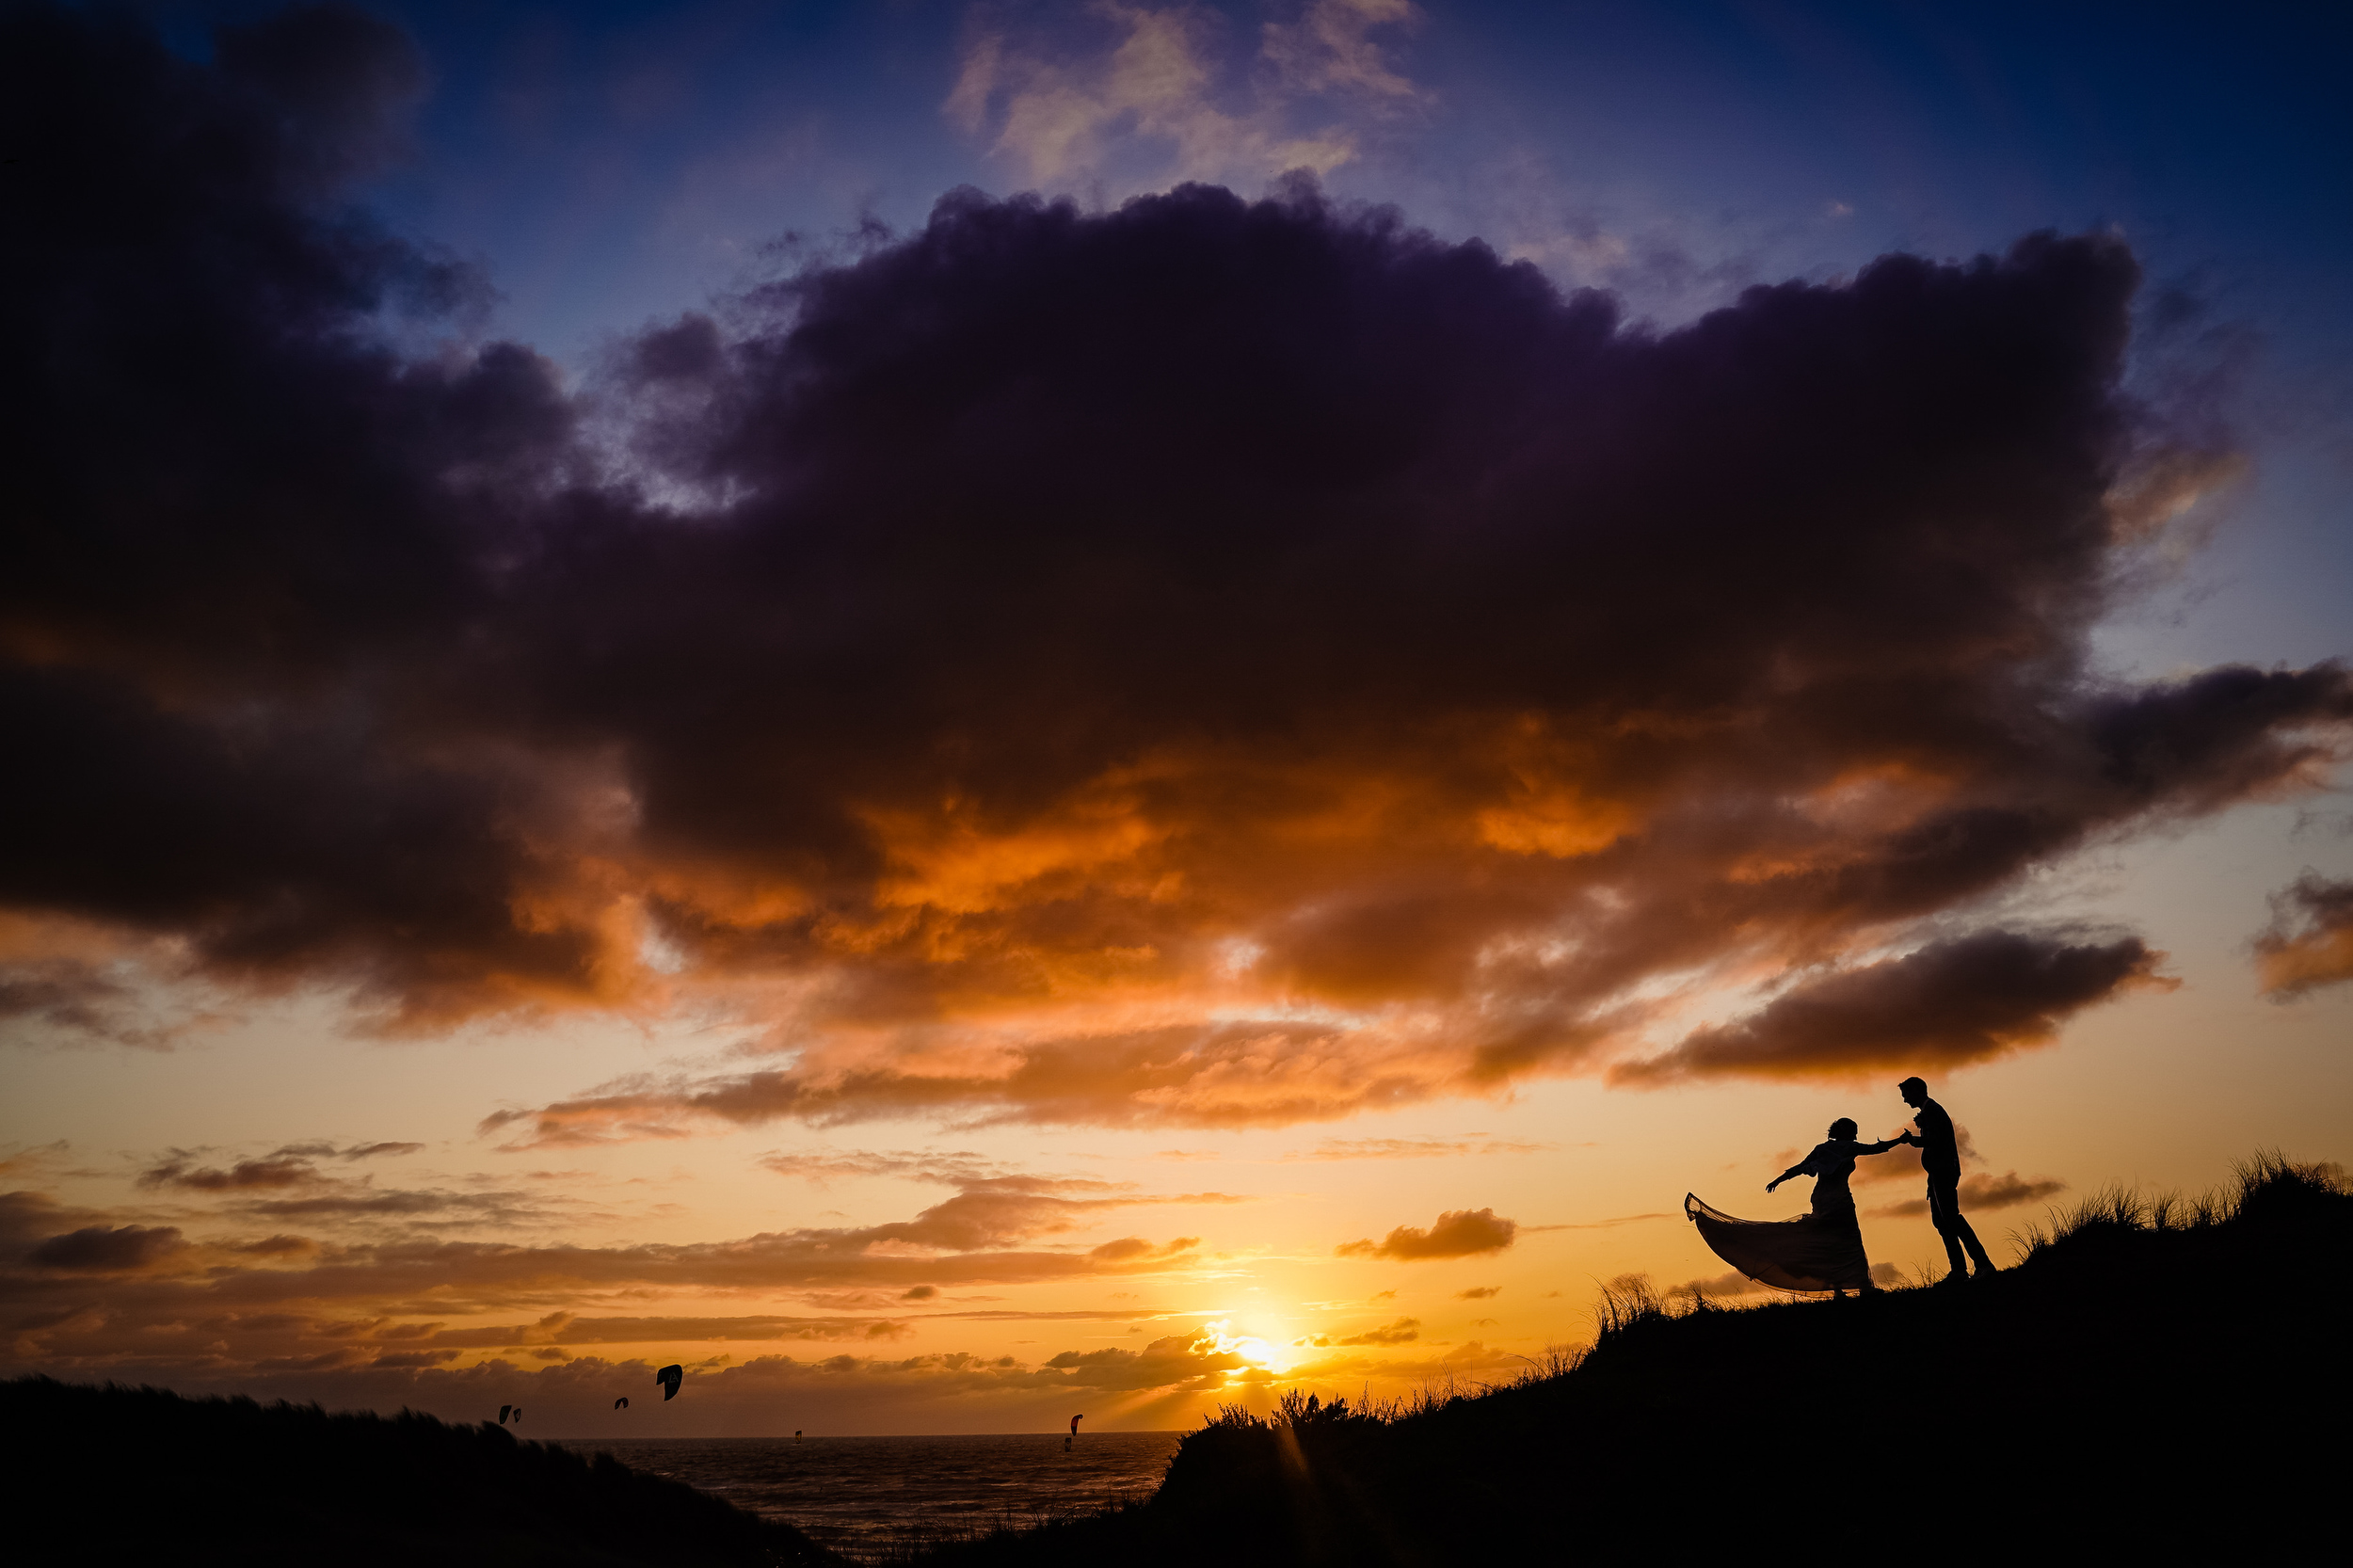 Sunset silhouette in motion - photo by Studio Damon Photograpy